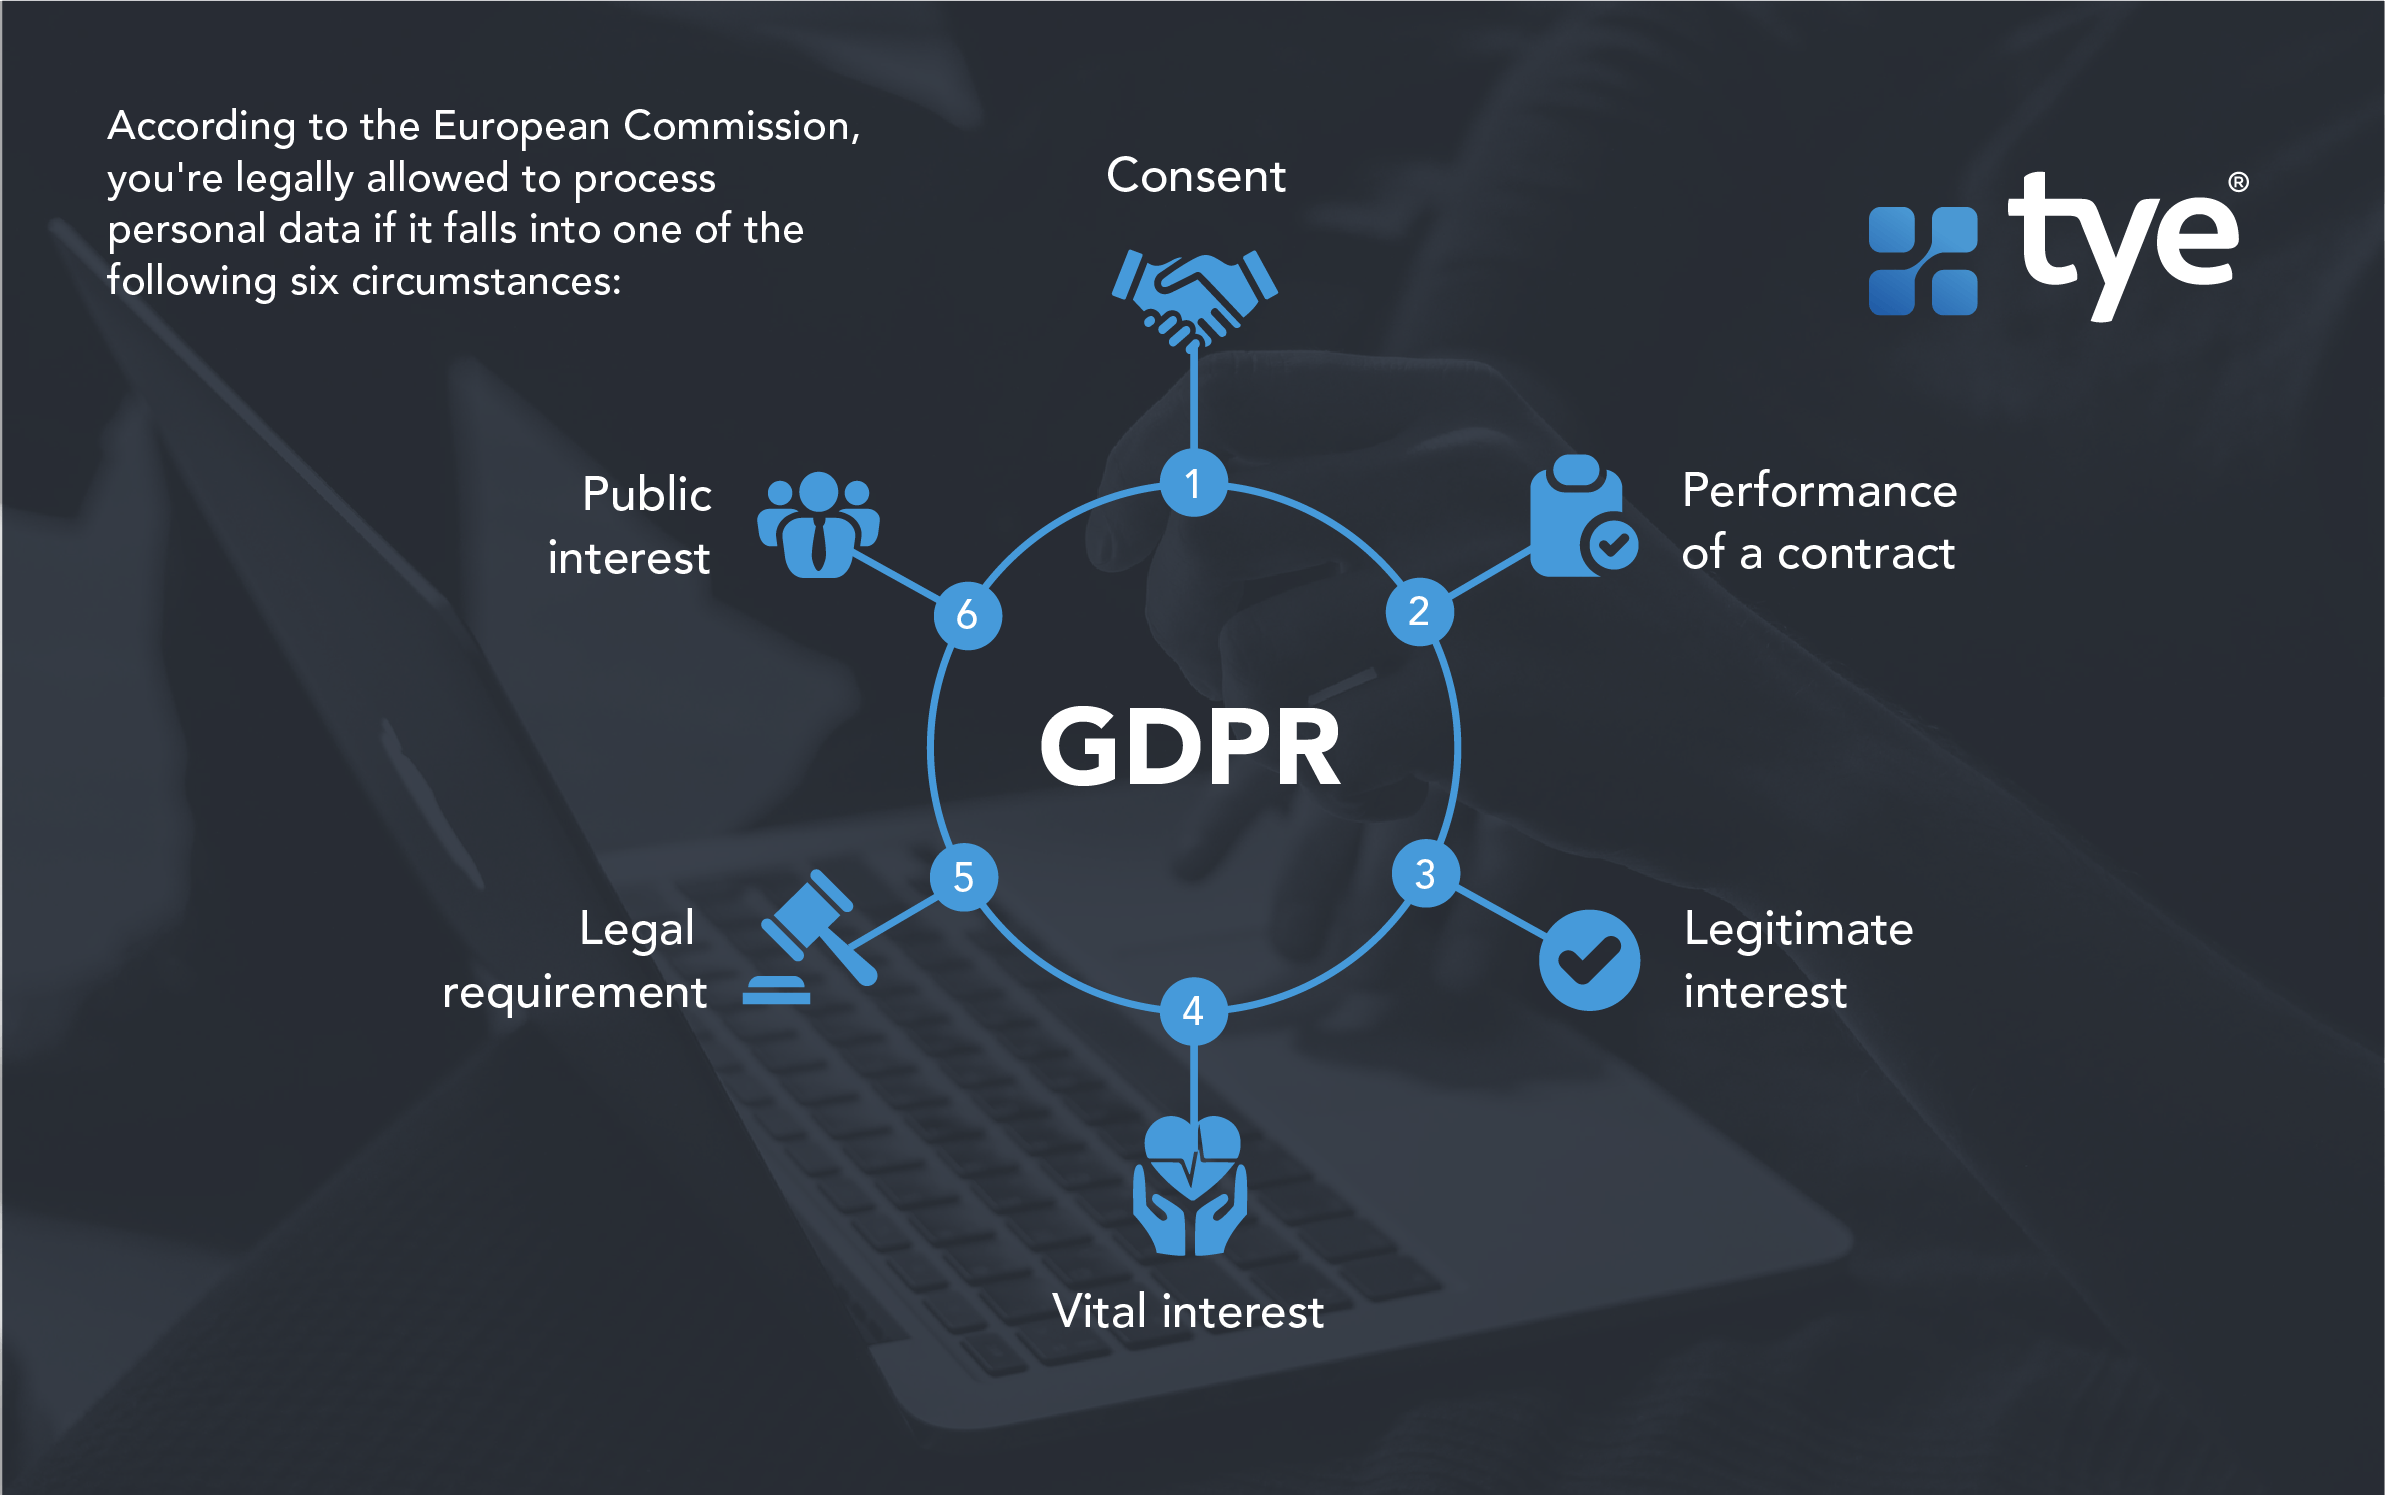 Image showing when you're allowed to legally process personal data in accordance with GDPR